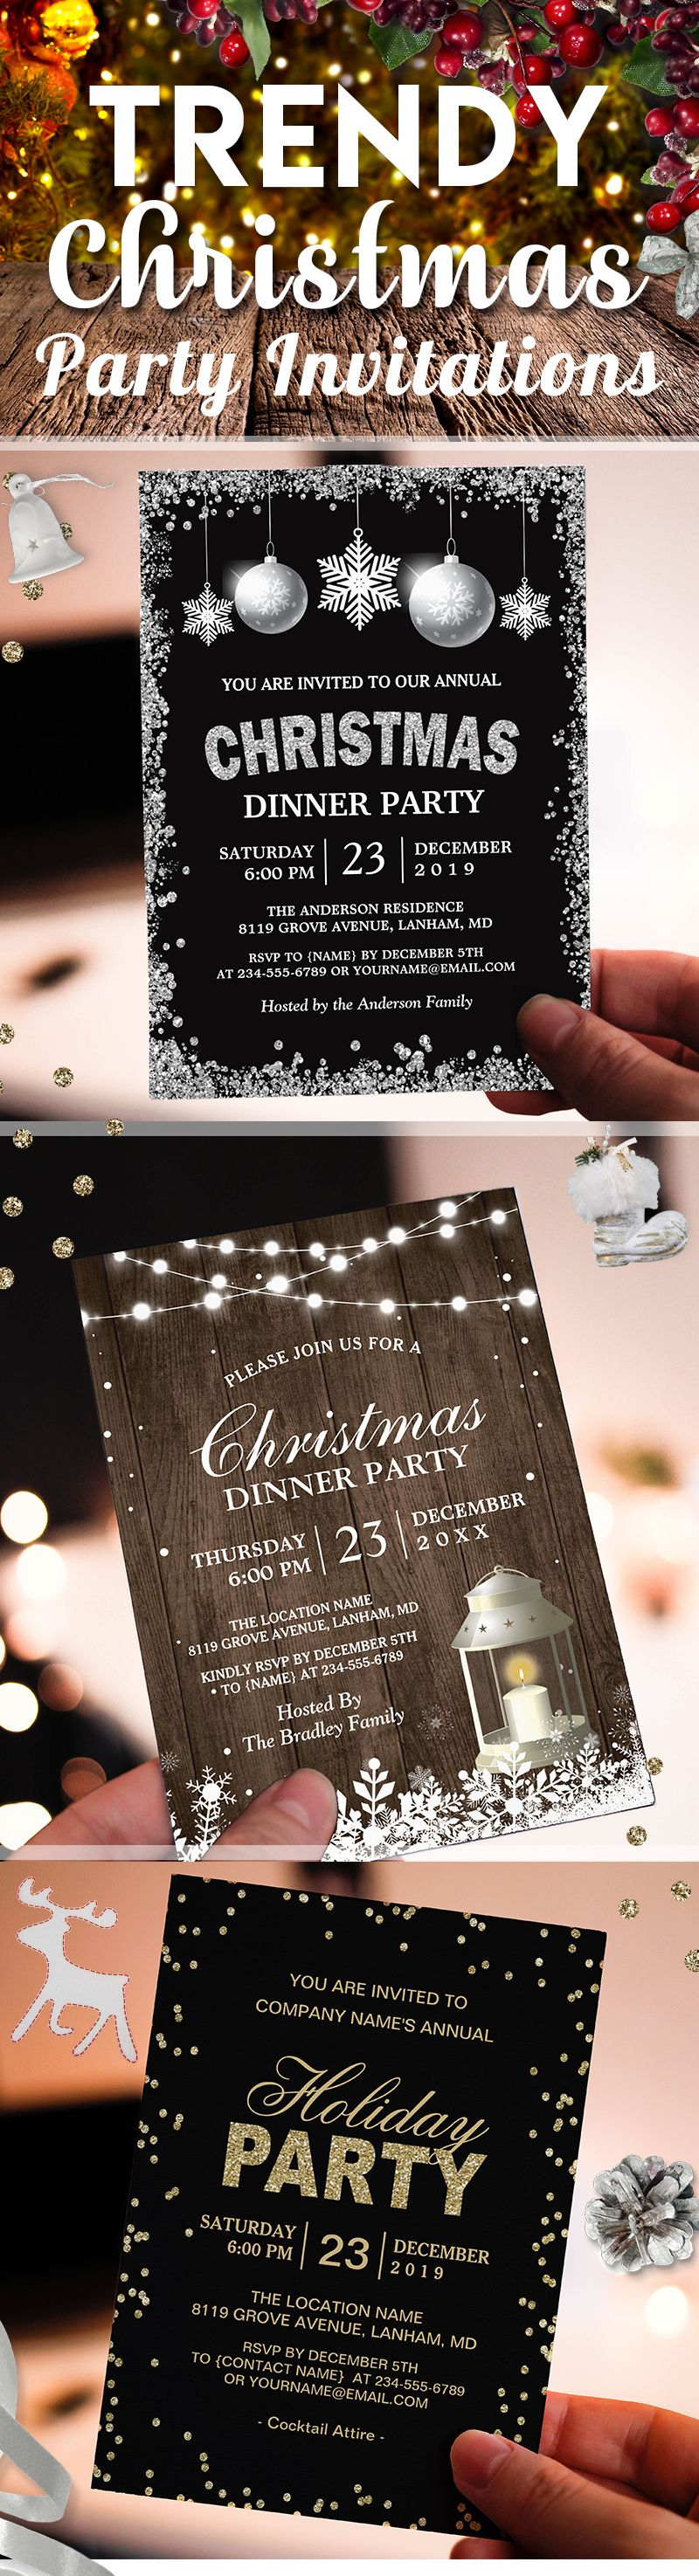 party invitations after wedding%0A     Stunning Holiday And Christmas Party Invitations